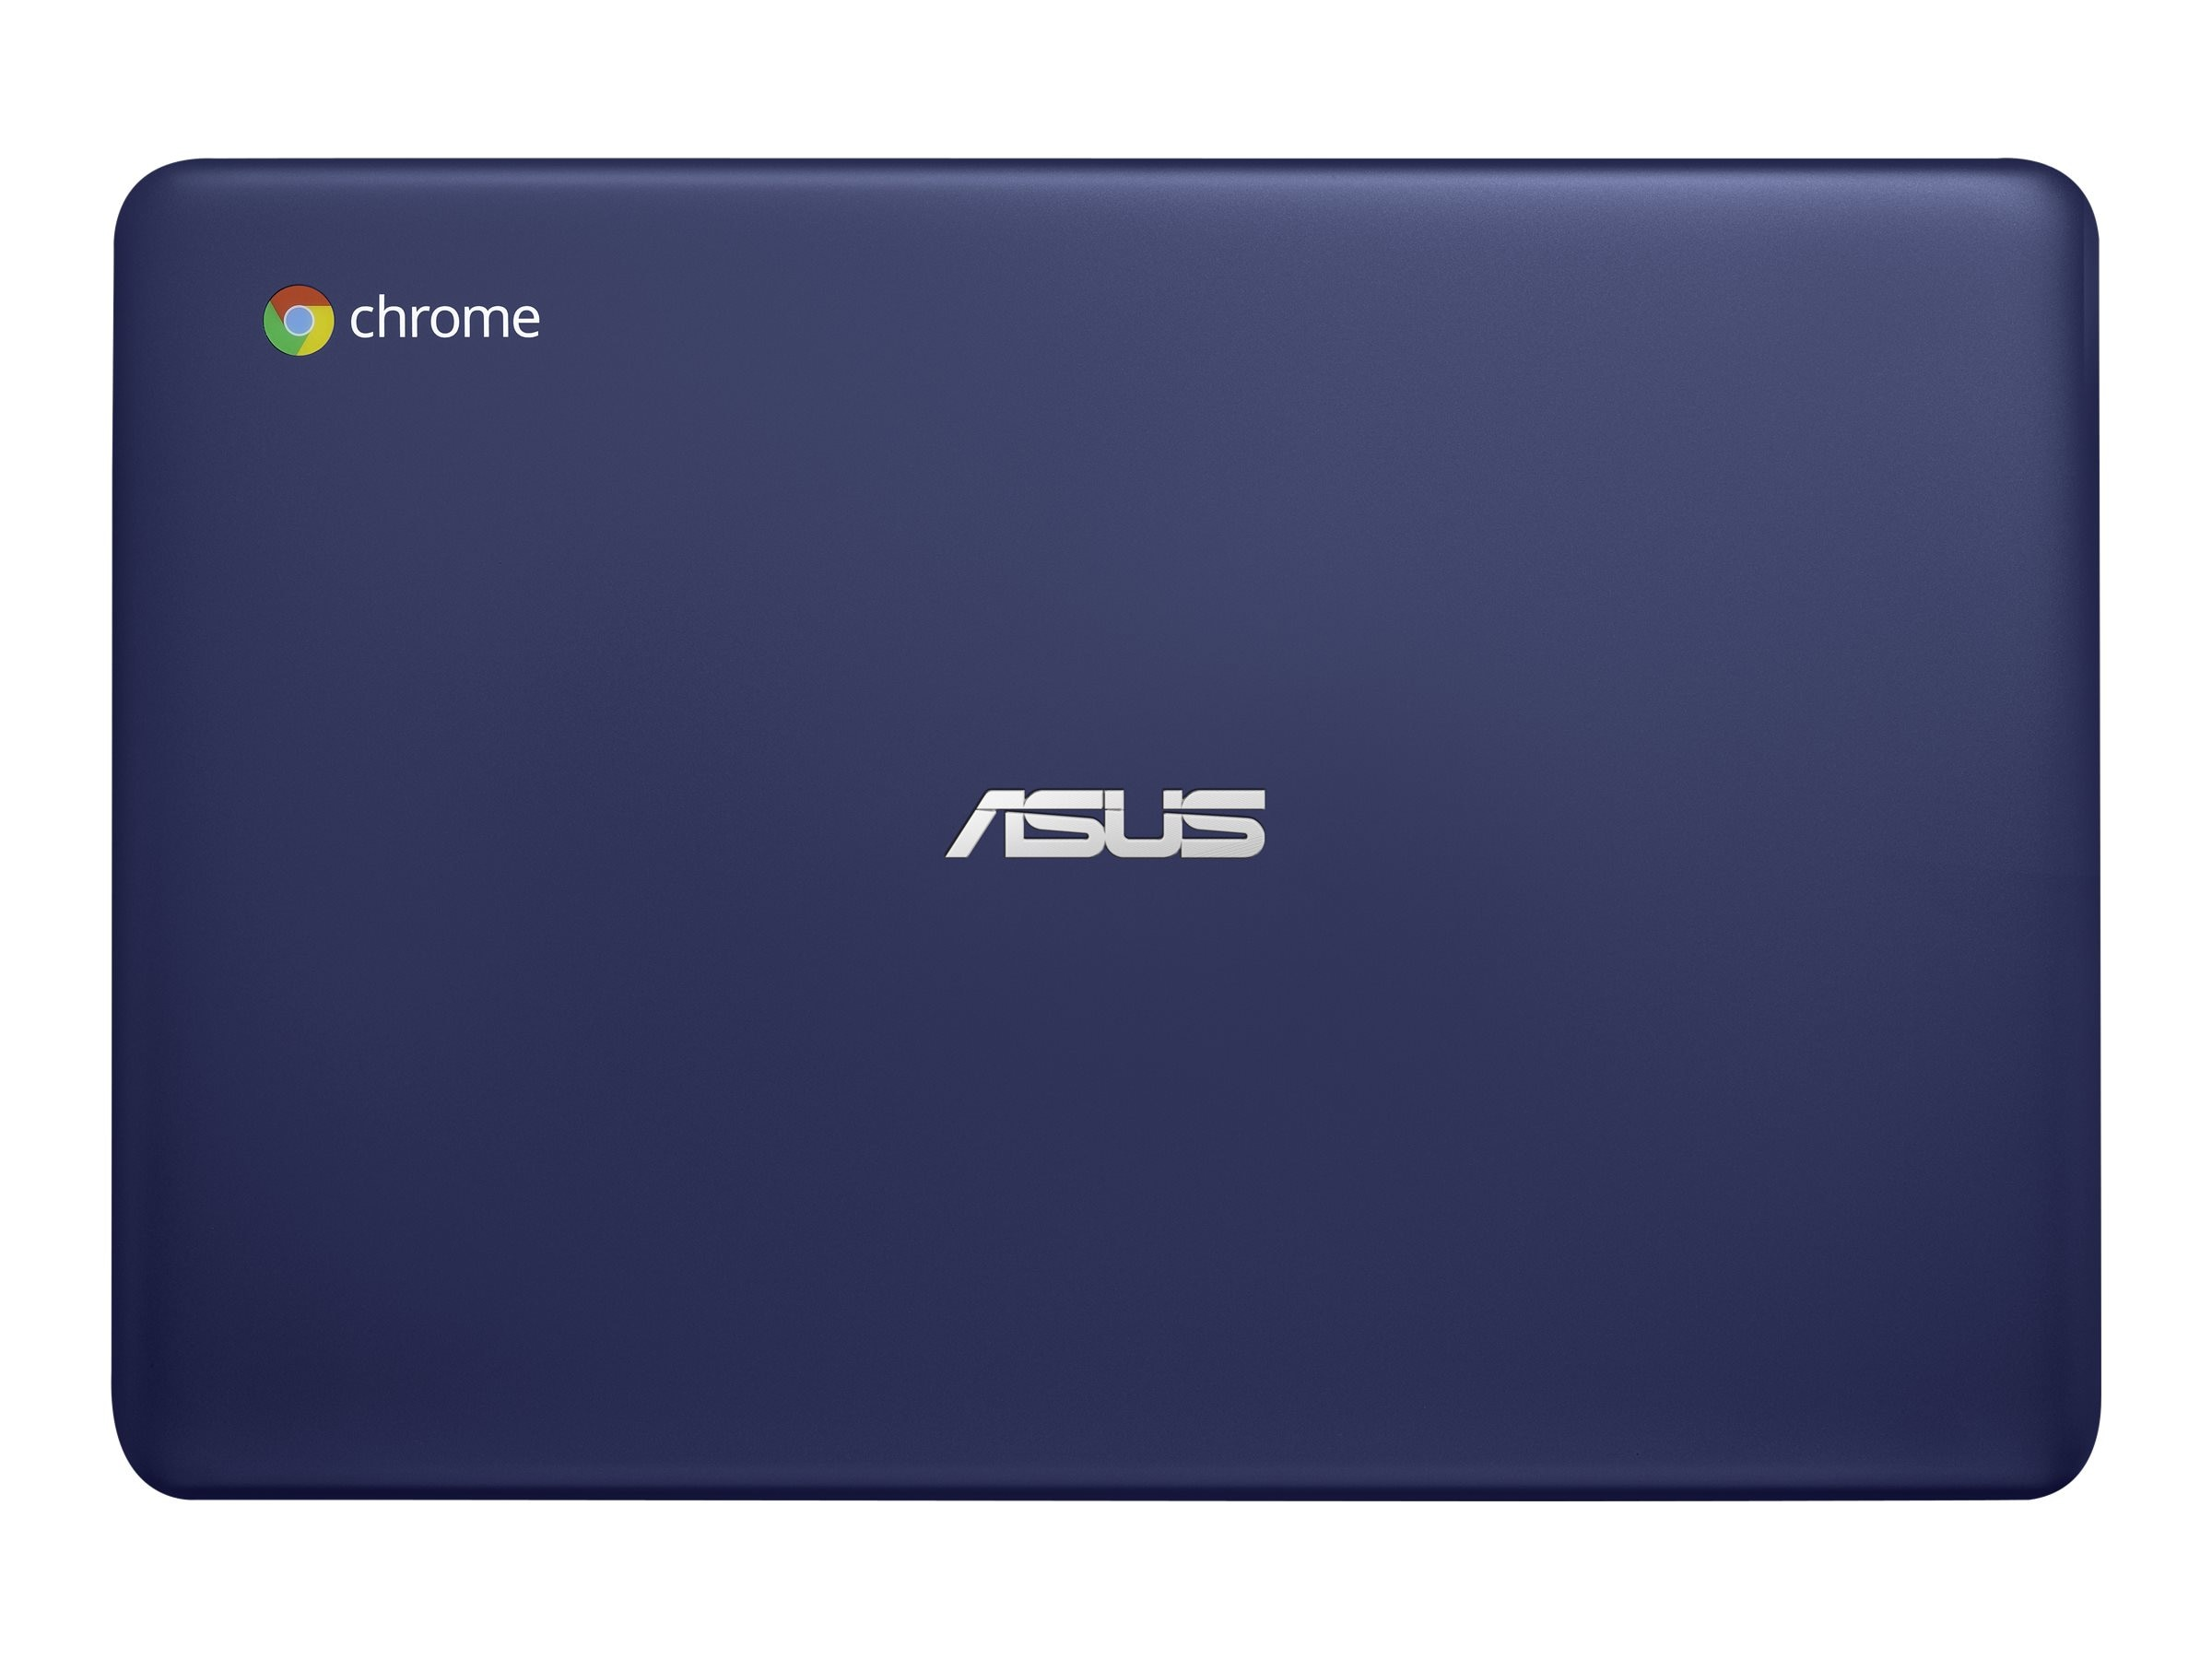 Asus C201PA QC 1.8GHz 4GB 16GB SSD WLS WC Chrome OS, C201PA-DS02